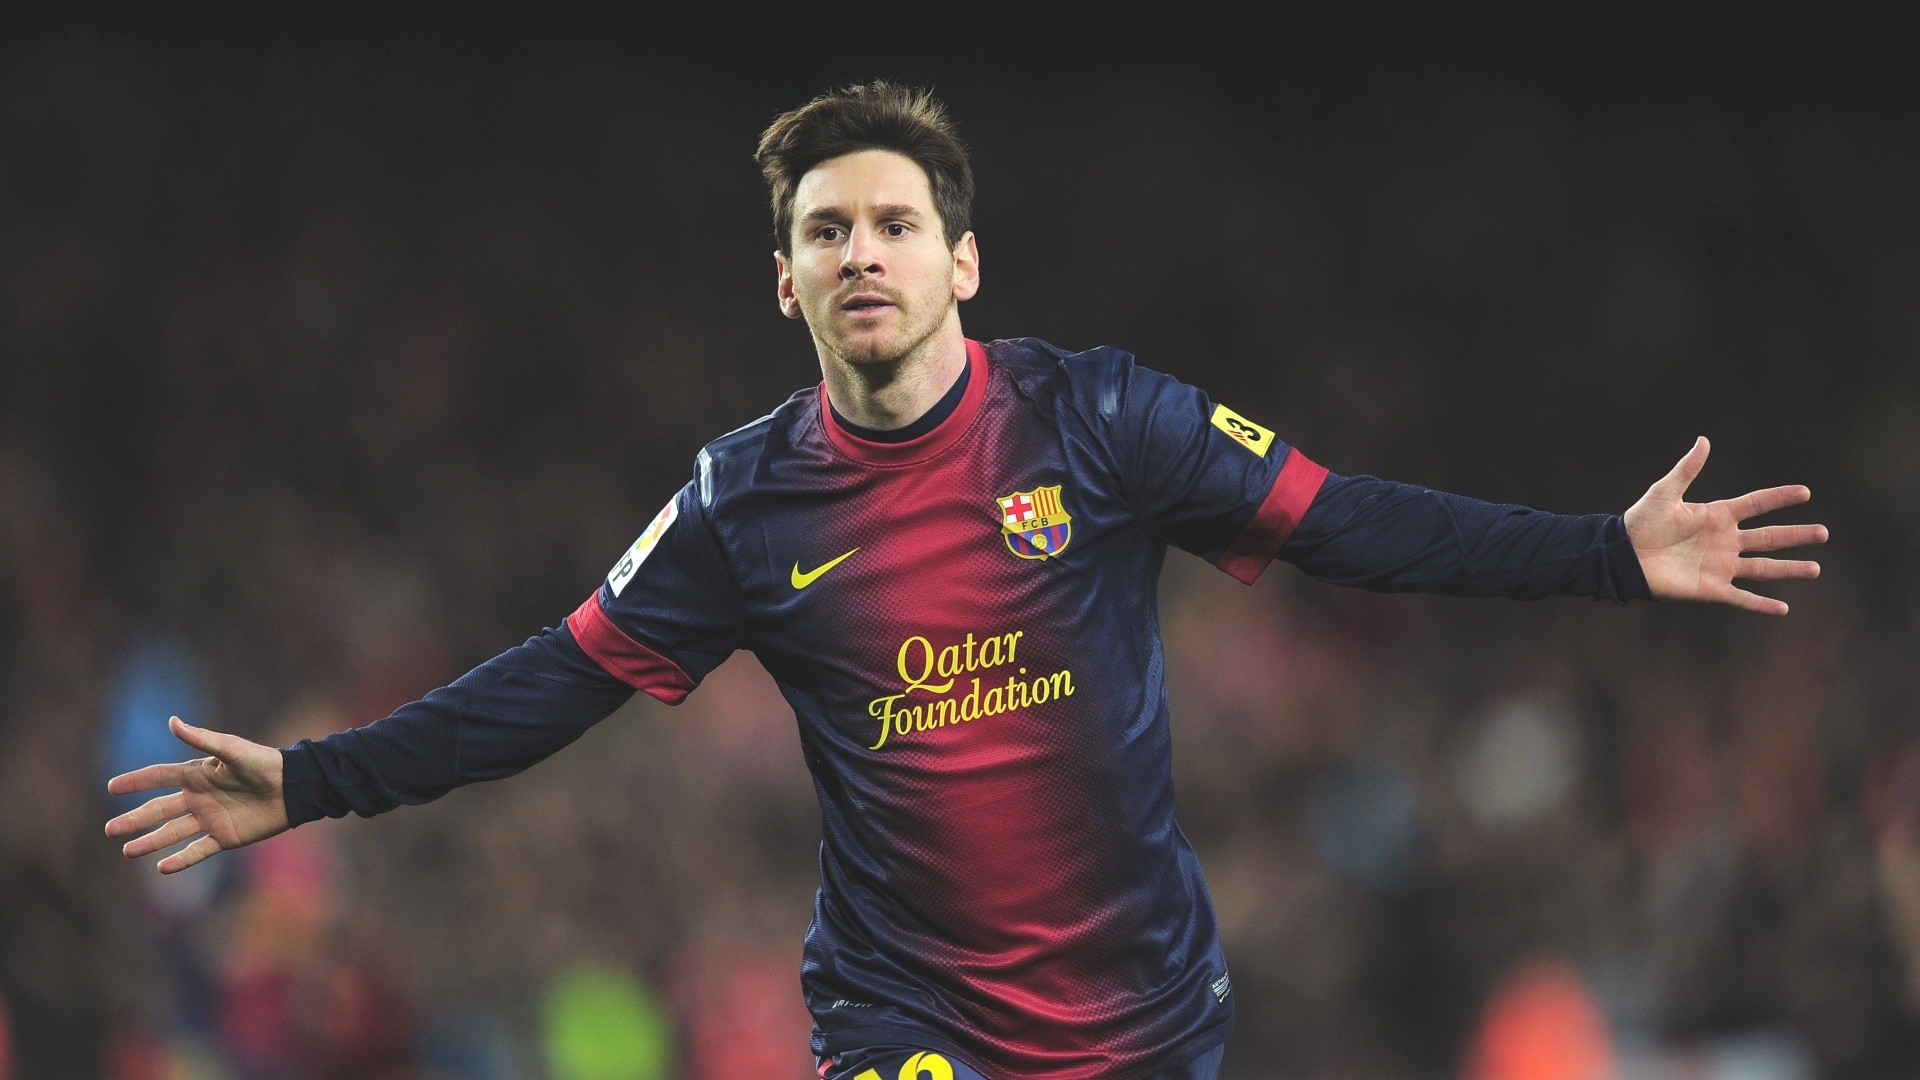 Lionel-Messi-HD-wallpaper-wp3807695